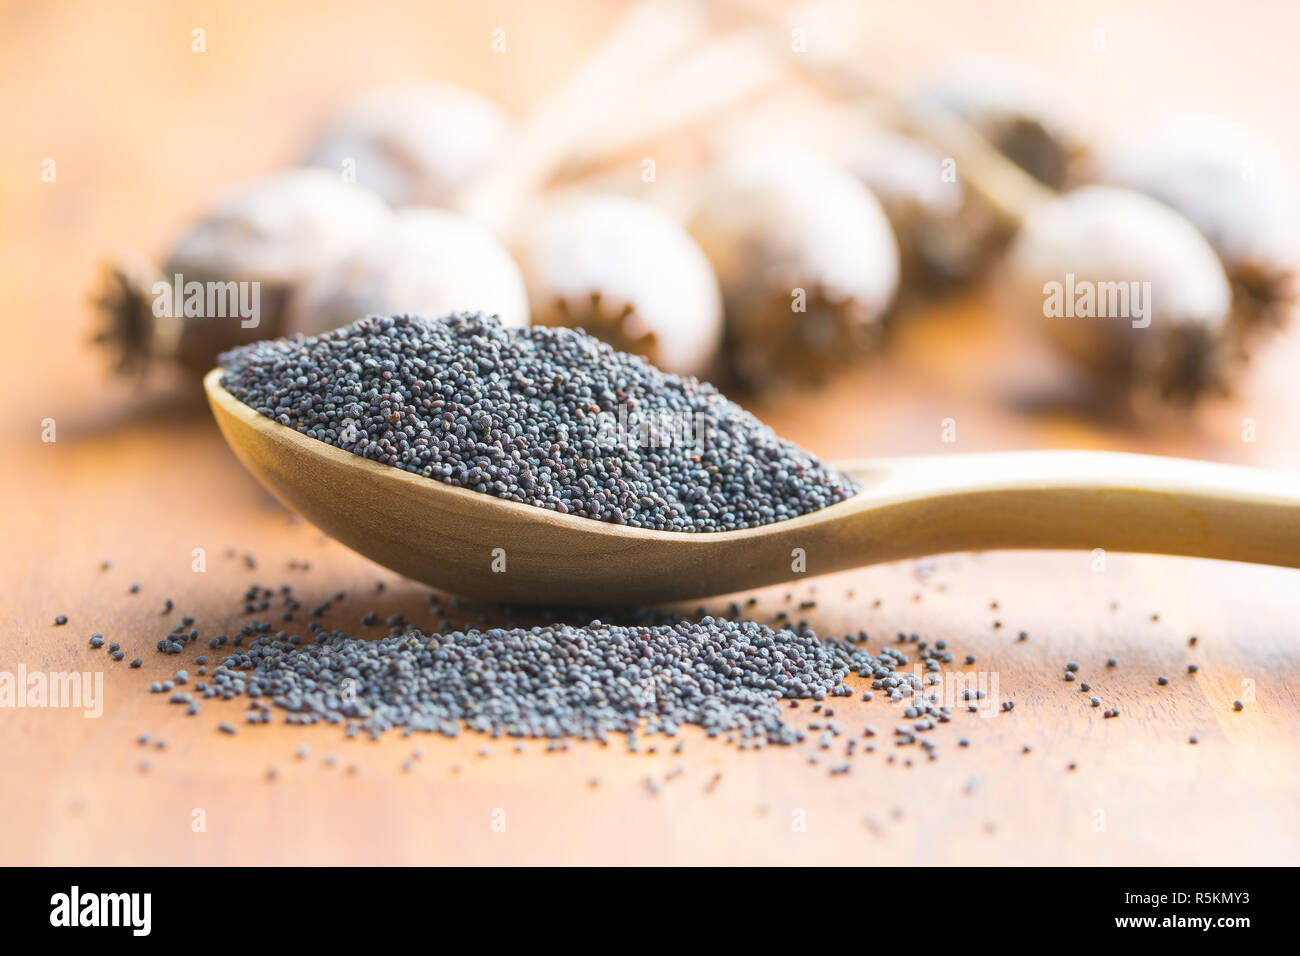 Dried poppy heads and seeds. - Stock Image